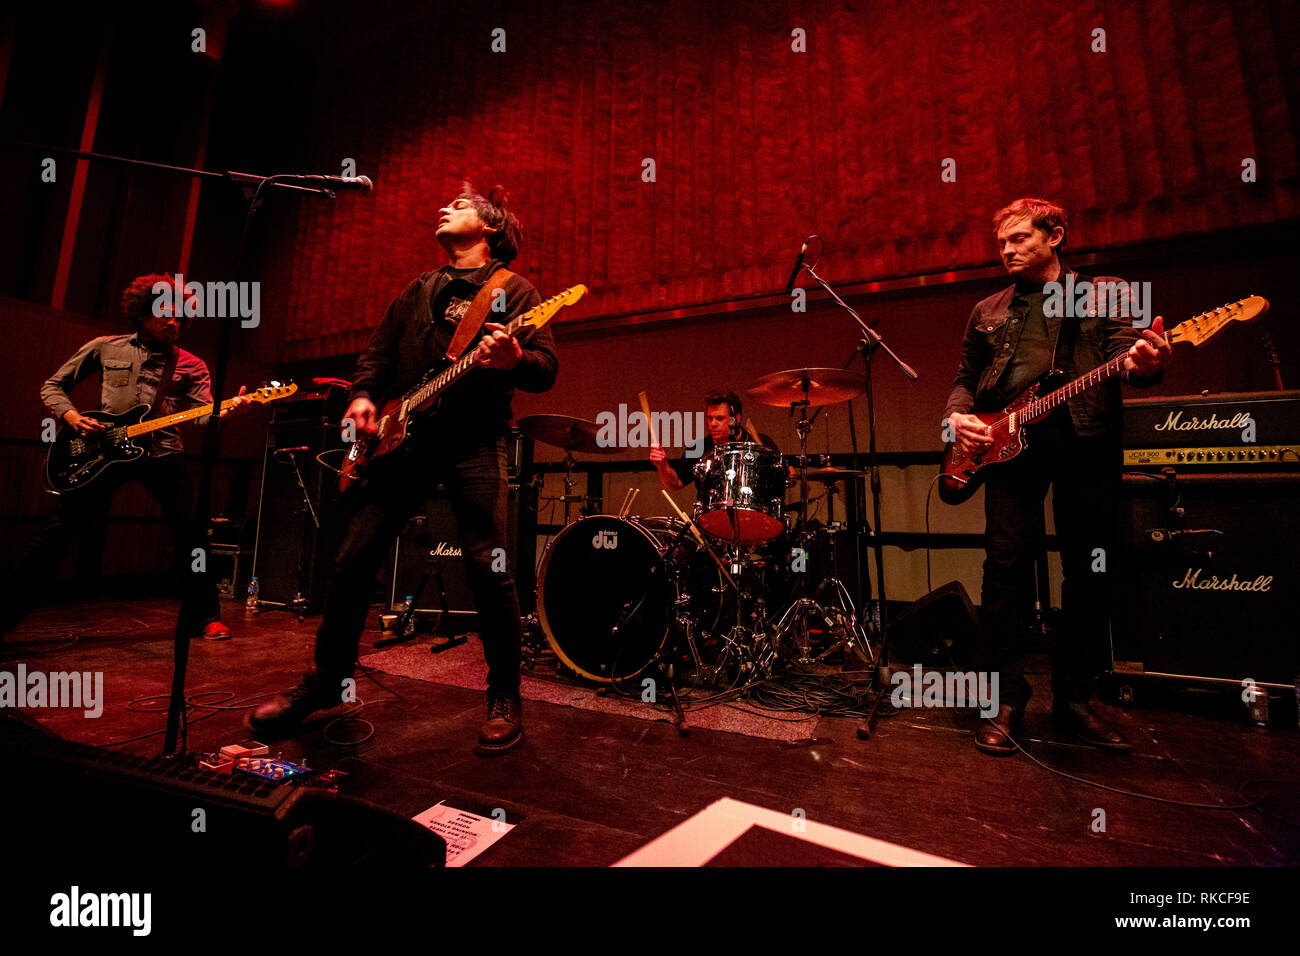 Cambridge, UK. 10th February, 2019. American indie art rock band ...And You Will Know Us by the Trail of Dead performs live at Storey's Field Centre in Eddington celebrating 20 years of the album Madonna. Richard Etteridge / Alamy Live News - Stock Image